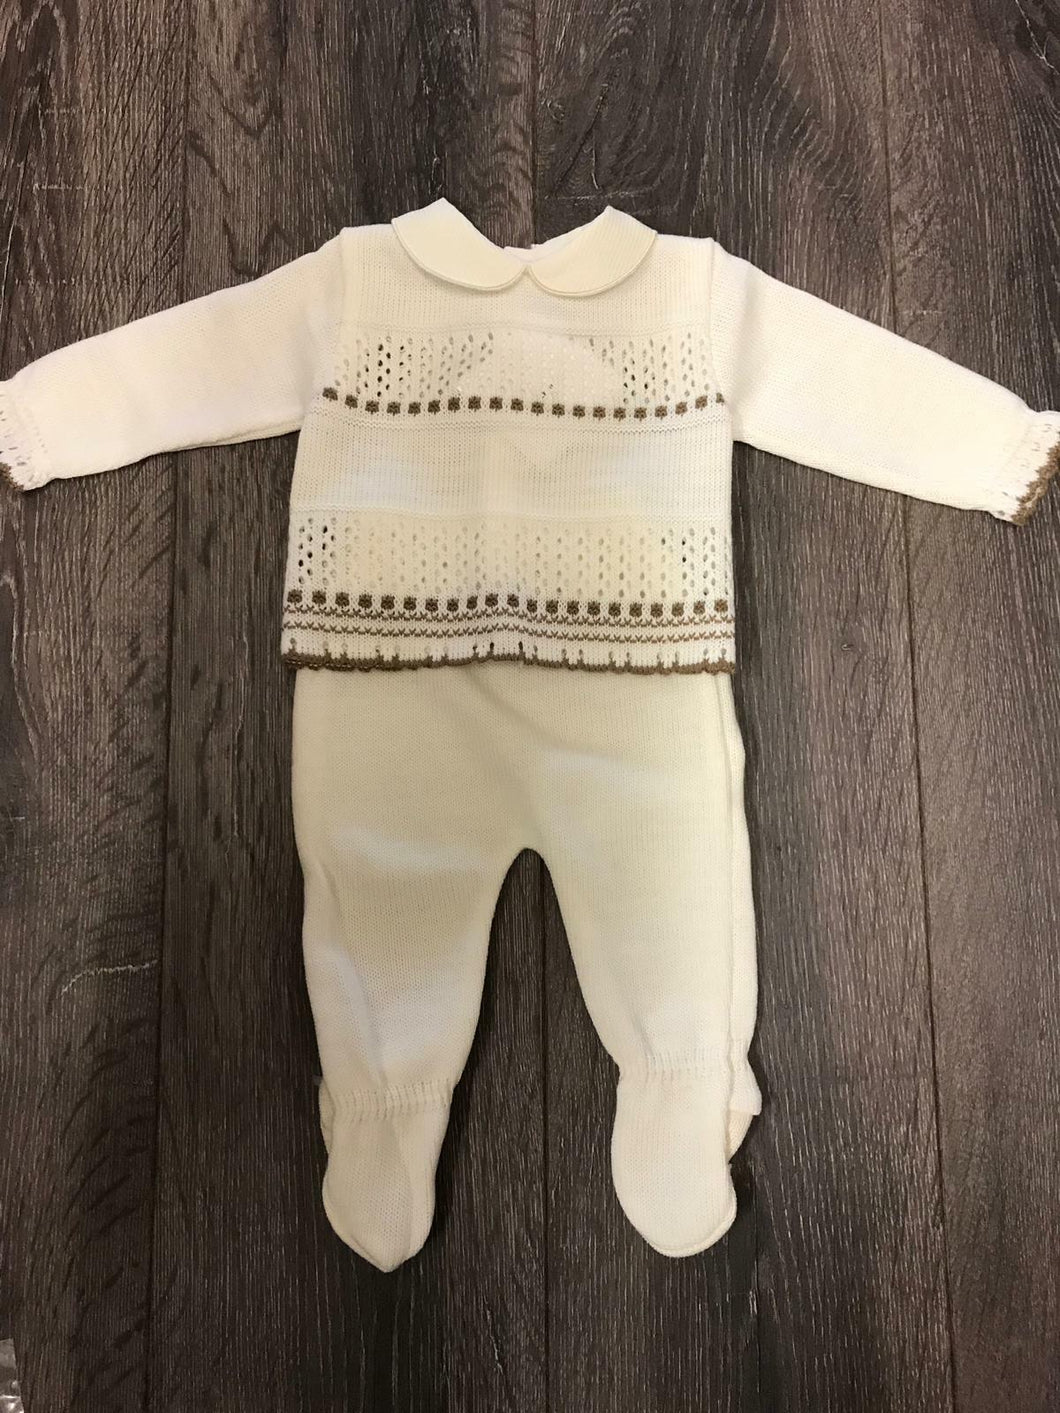 Baby Boy's or Girl's Spanish Cream Ivory 2 Piece Outfit